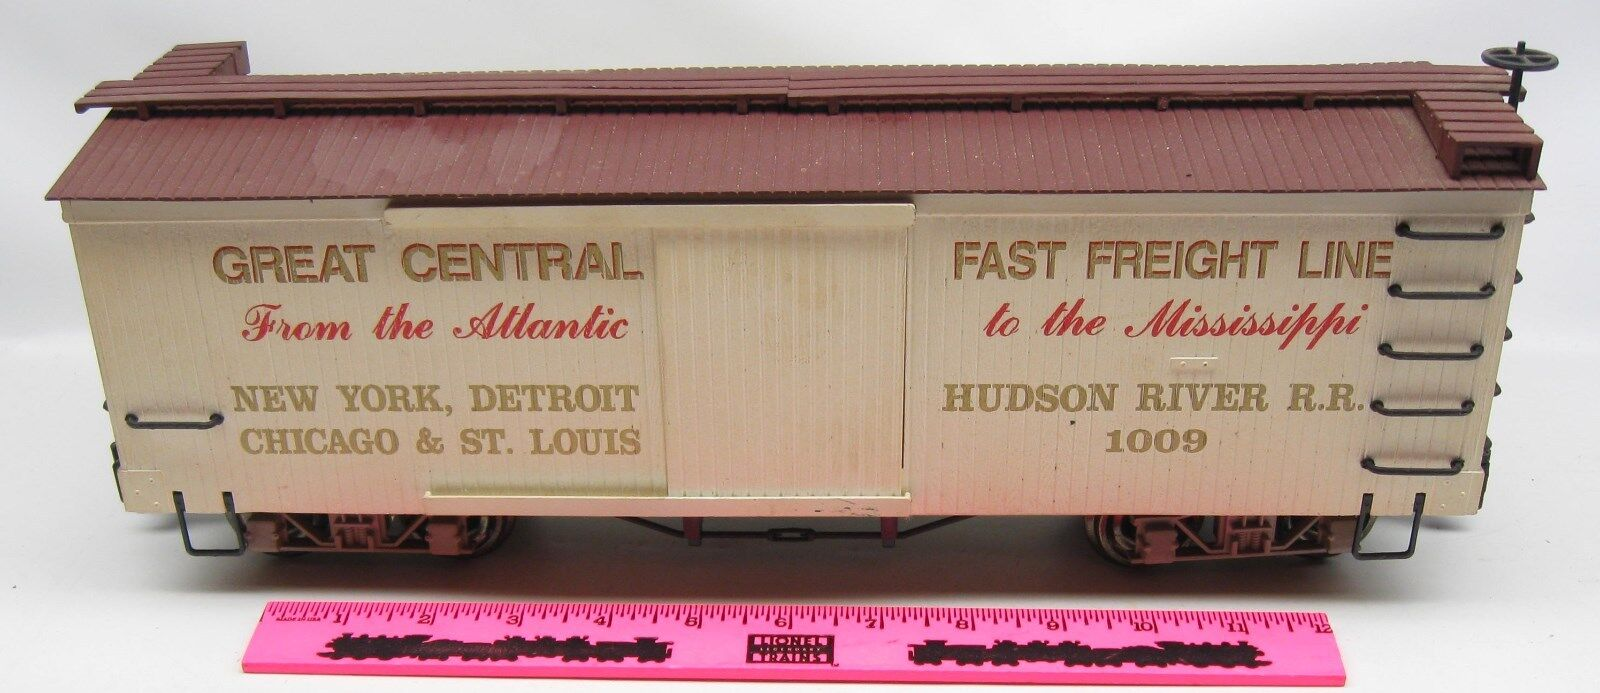 Bachmann 1009 Great Central Fast Freight Line box box box car  G scale db0826